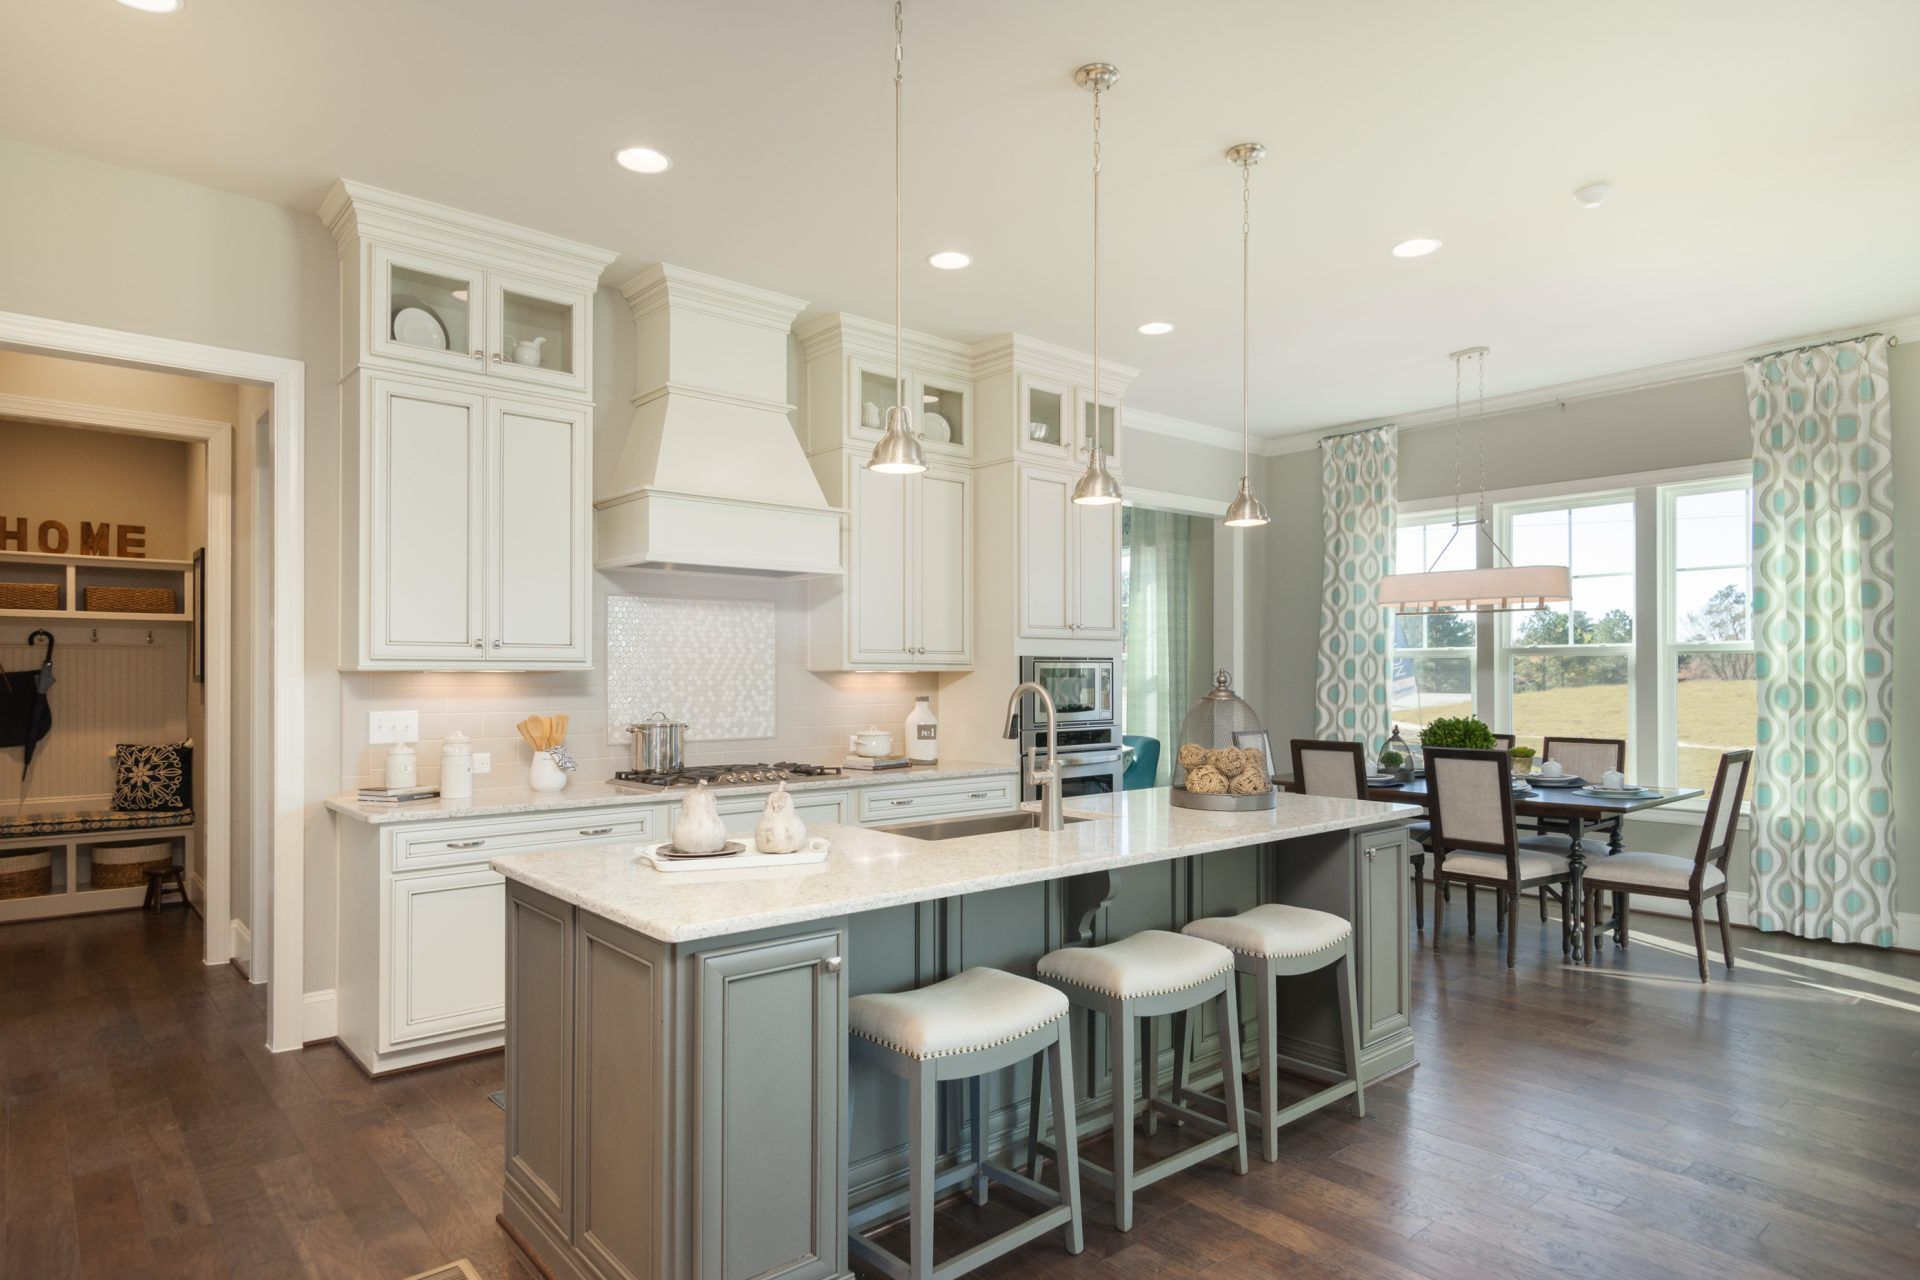 Kitchen featured in the Latham By HHHunt Homes LLC in Raleigh-Durham-Chapel Hill, NC